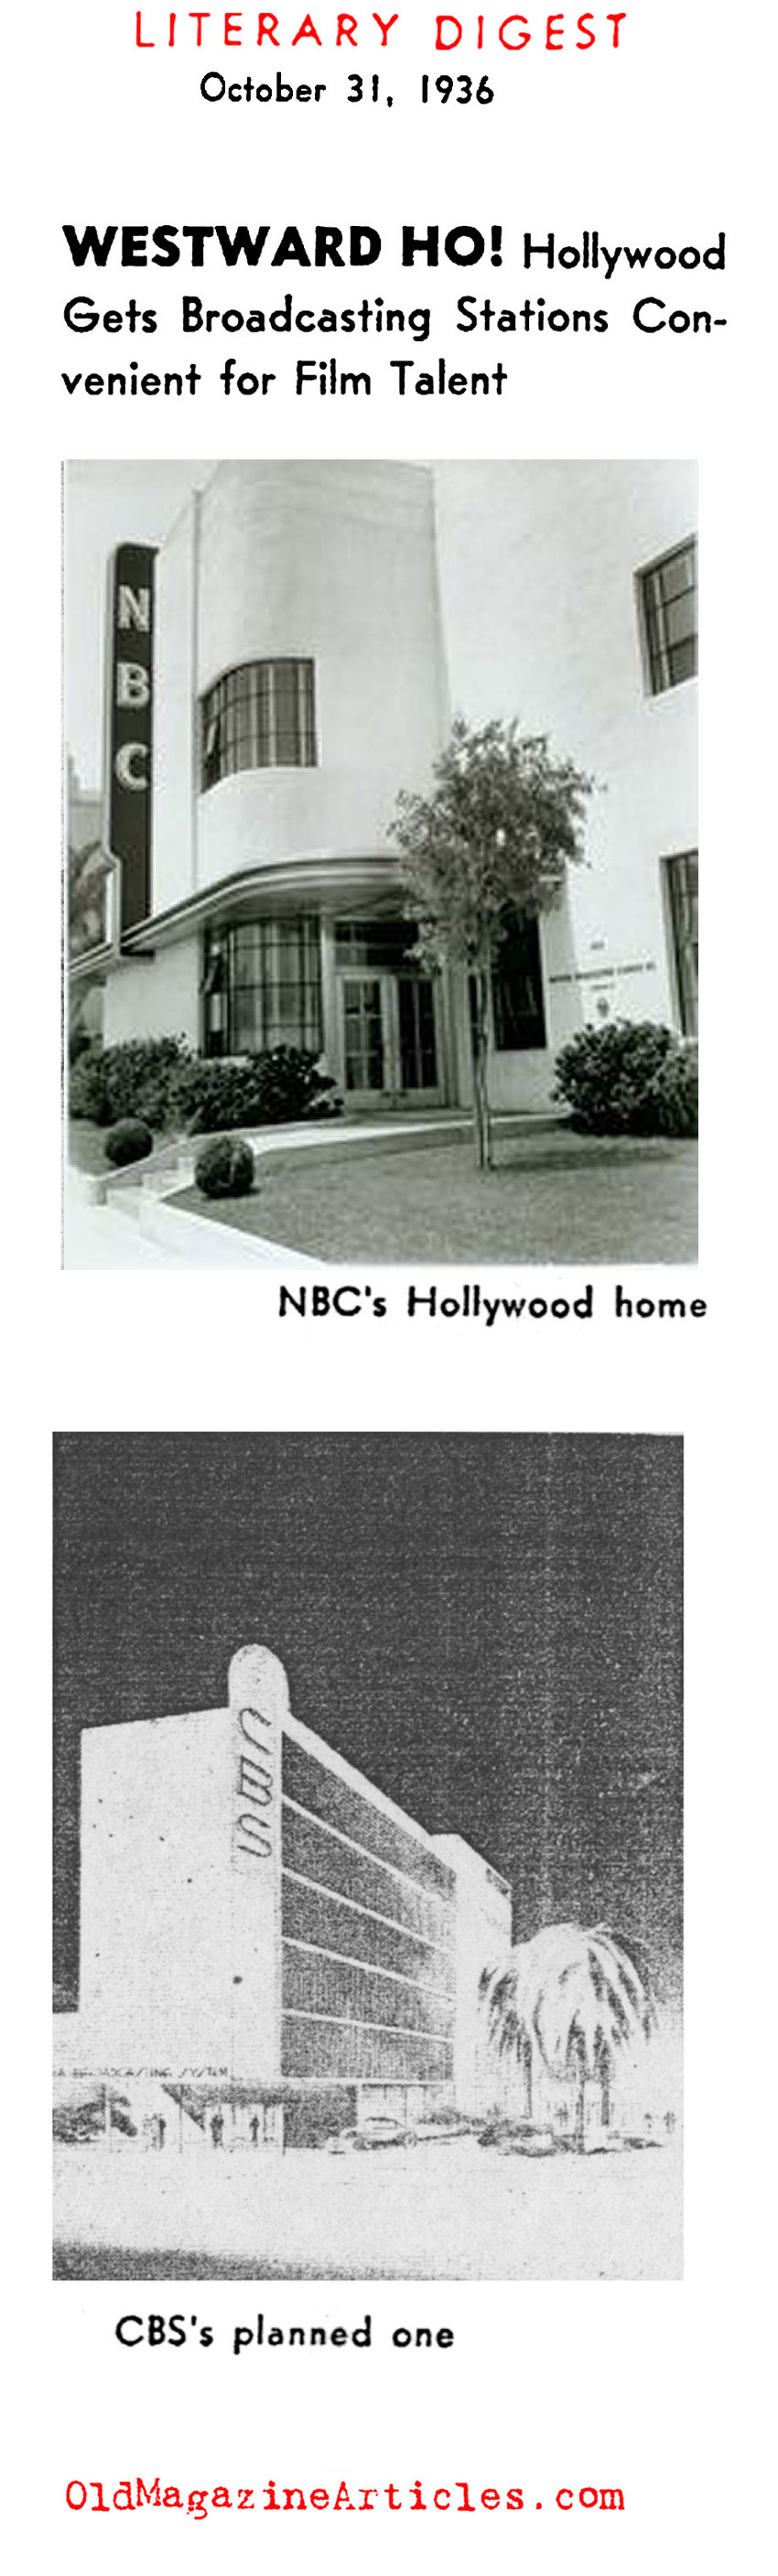 NBC and CBS Open Shop on the West Coast (Literary Digest, 1936)